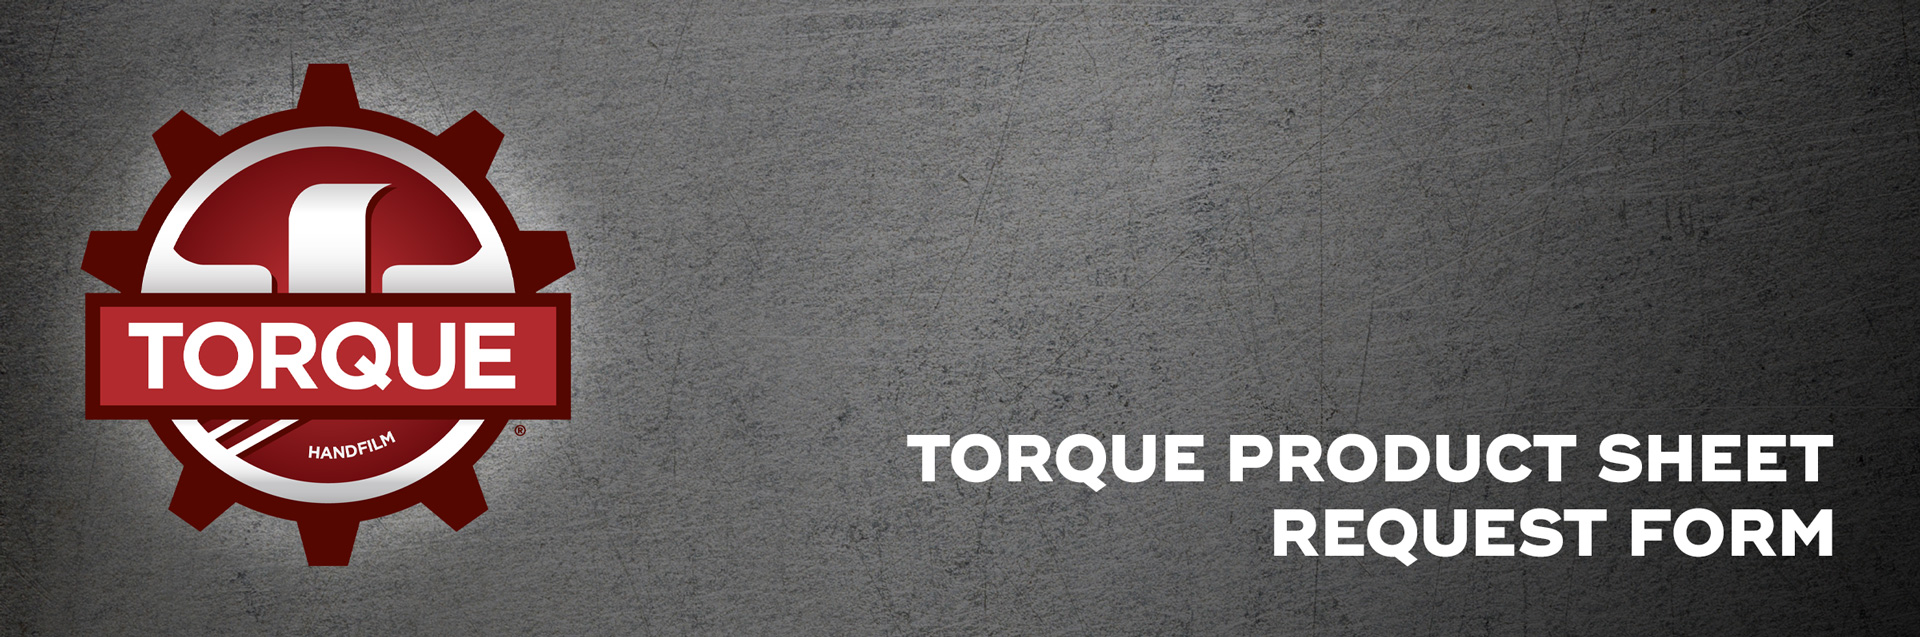 Torque-Product-Sheet-Request-Form